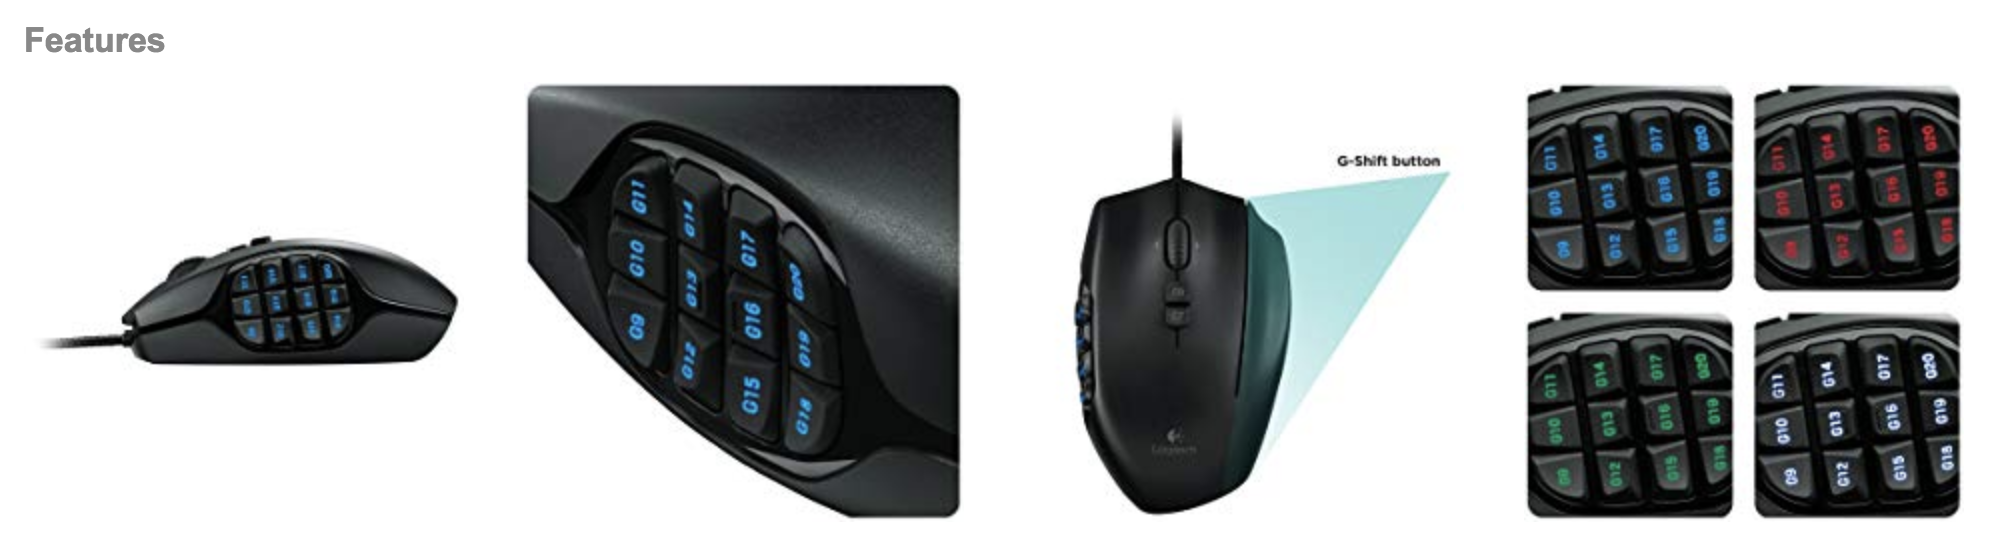 509cc7bb7b1 Specifications of Logitech G600 MMO Gaming Mouse, RGB Backlit, 20  Programmable Buttons. Brand